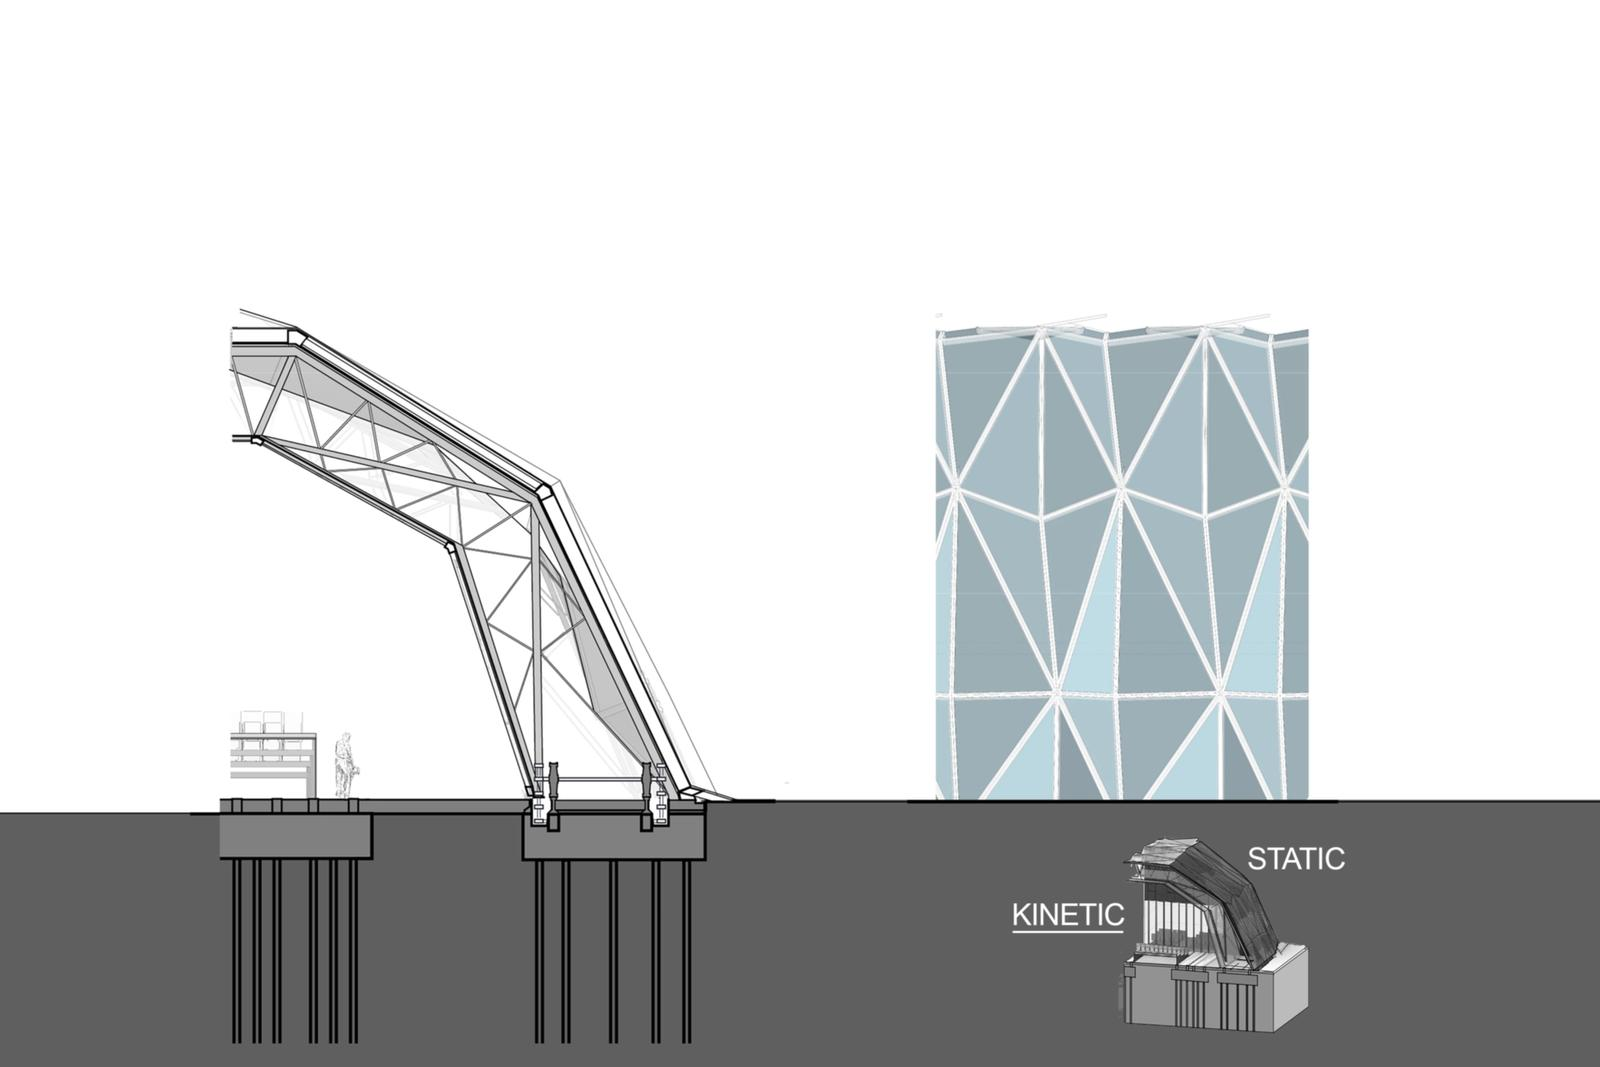 Kinetic Wall Section - Sliding Truss Frames & Folding Multi-functional ETFE Modules